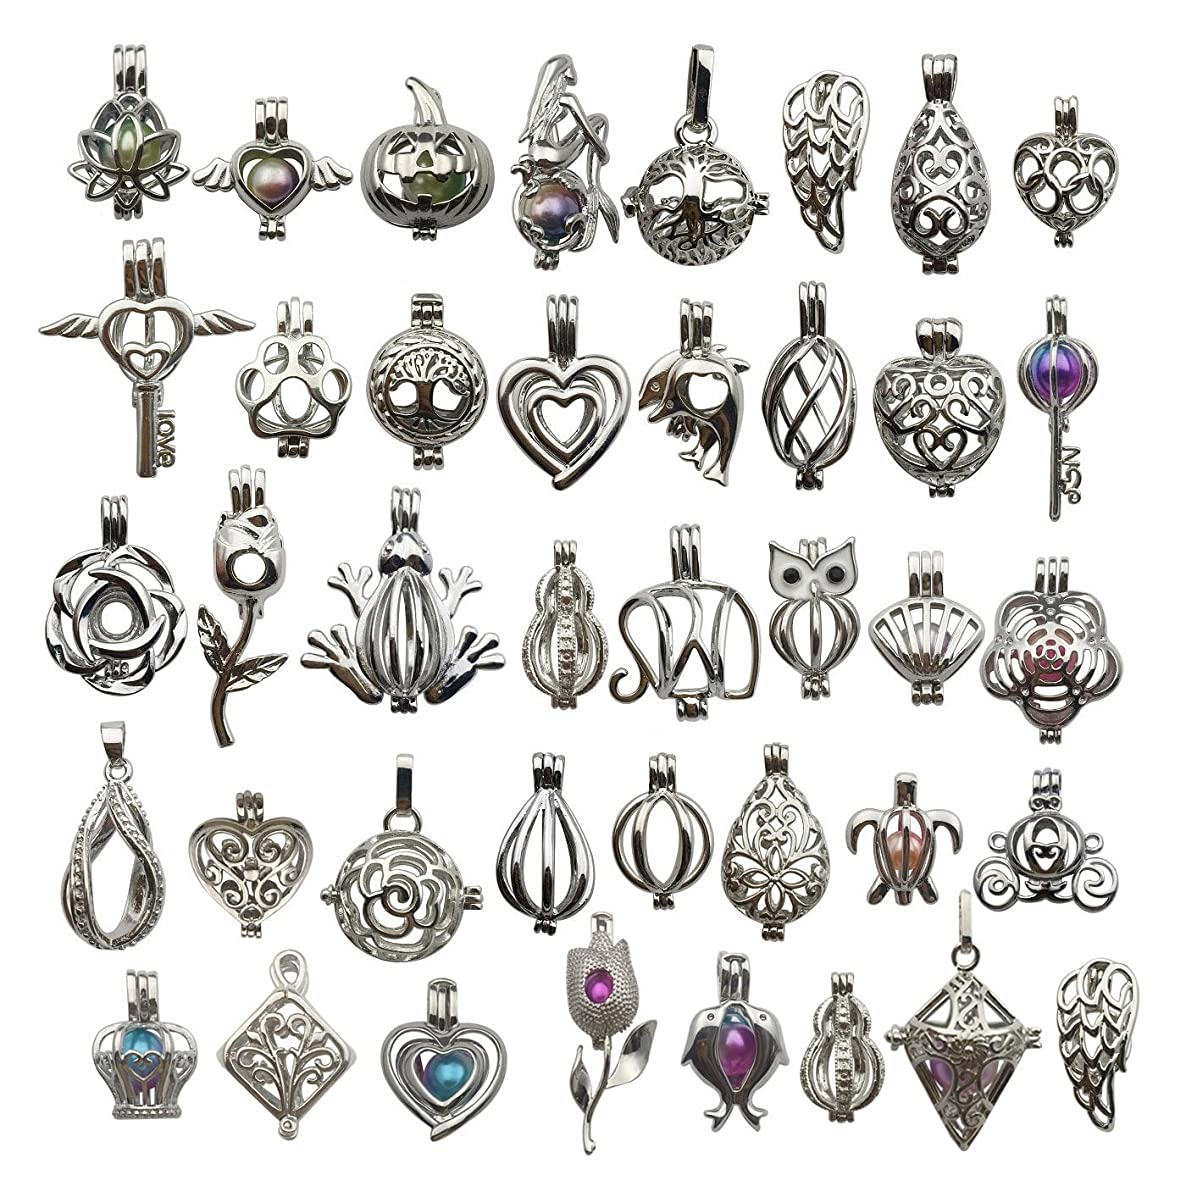 Mixed Shape White Gold Plated Pearl Bead Cages Pendants for Jewelry Making/Aromatherapy Essential Oil Scent Diffuser Locket Pendant (30 Pcs Mixed No Duplicate)